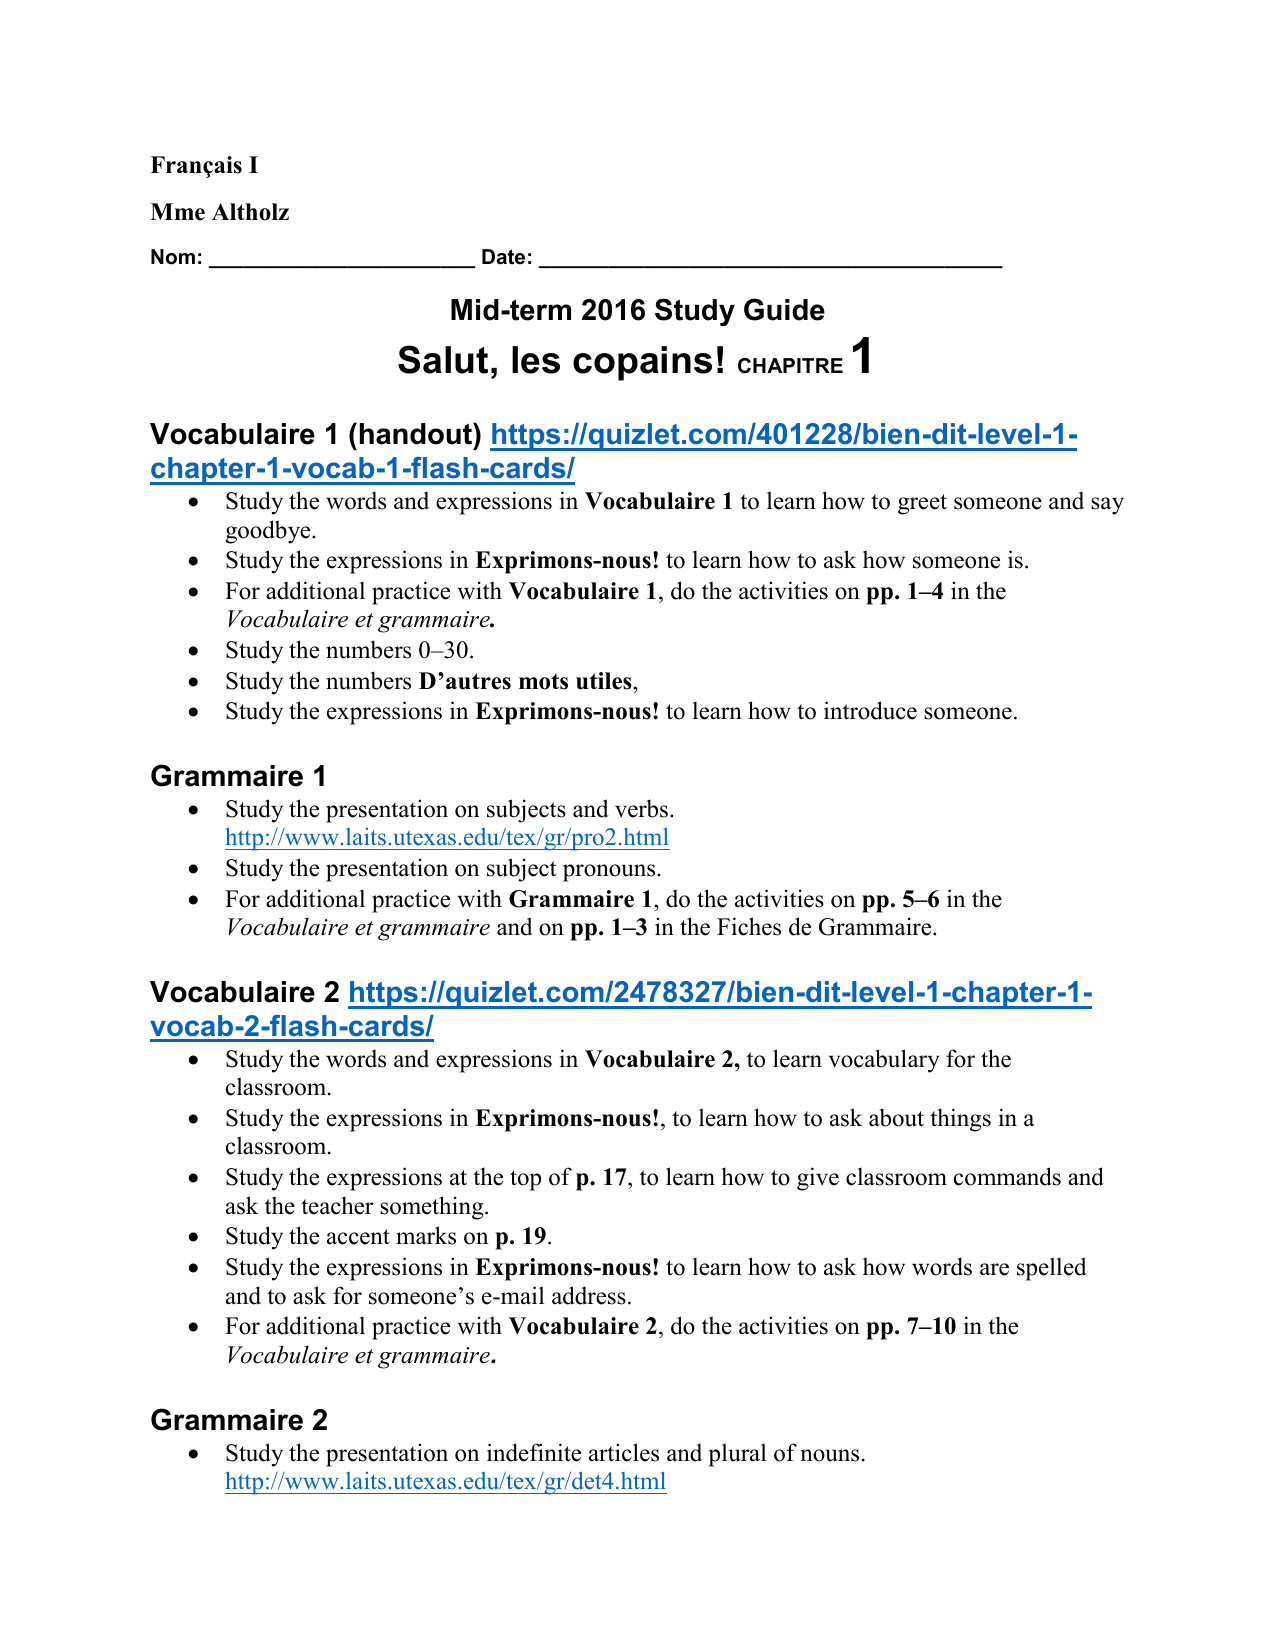 French I Mid-term 2016 study guide chapter 1 to 3